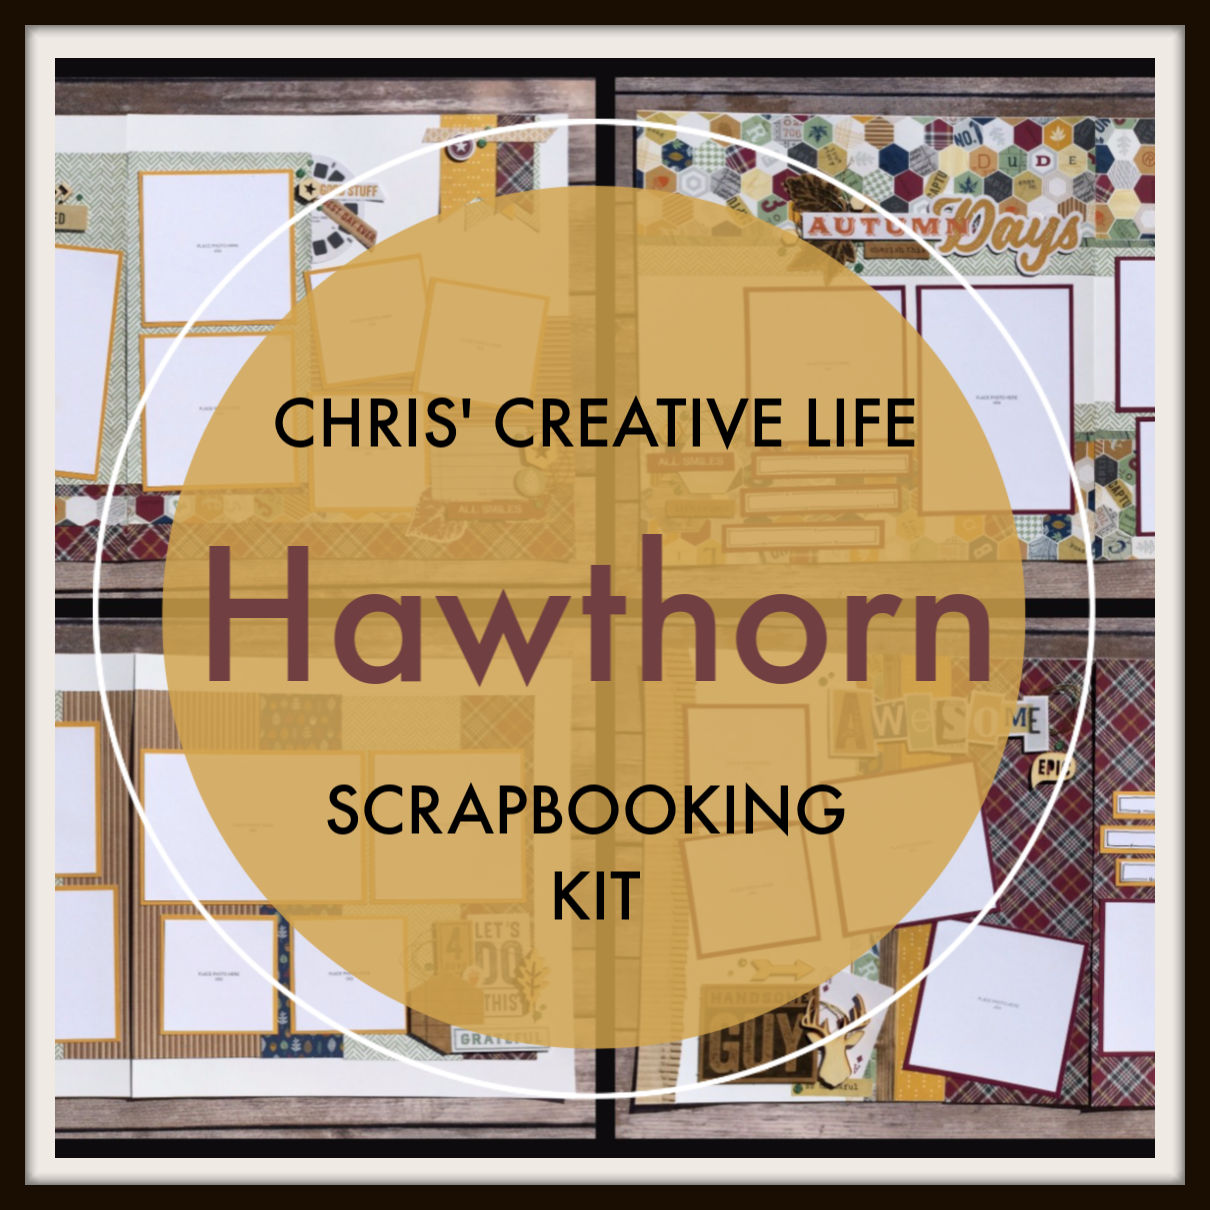 Hawthorn Scrapbooking Guide